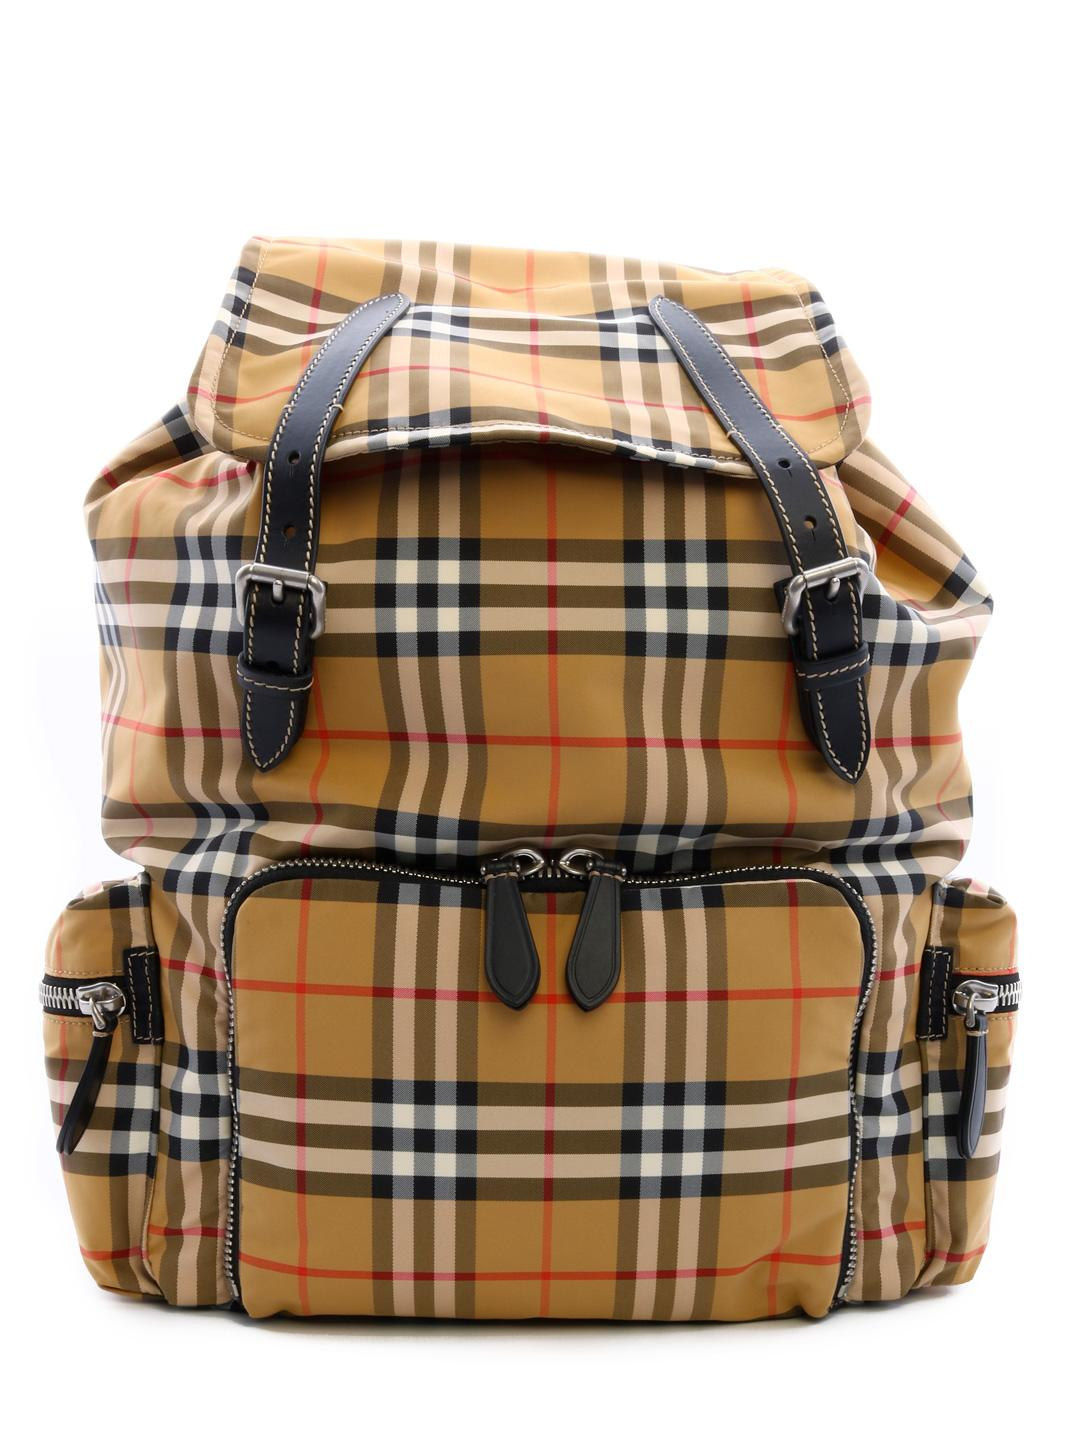 33ae555c8cd1 Burberry - Natural The Large Vintage Check Rucksack for Men - Lyst. View  fullscreen